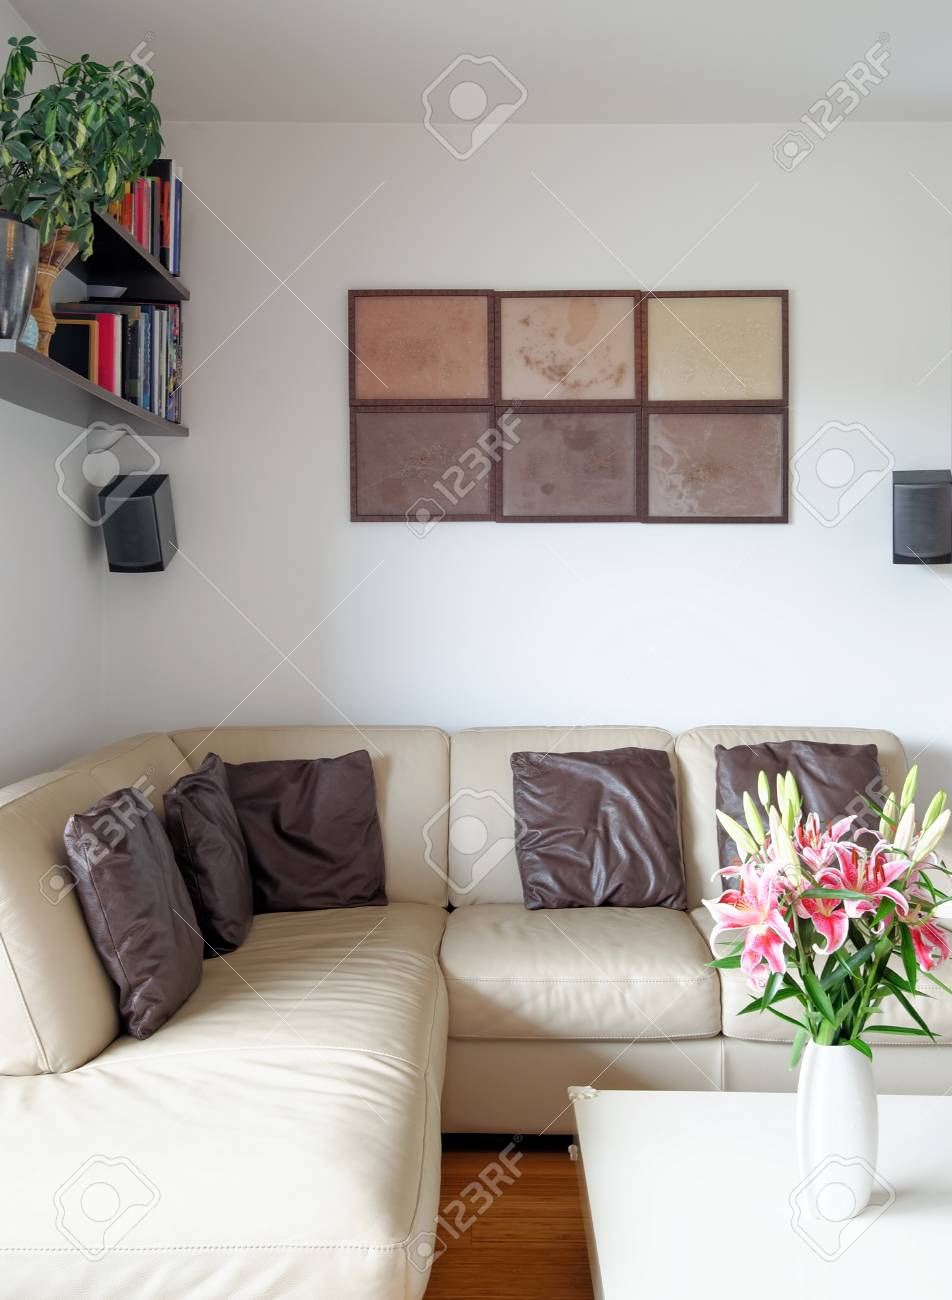 A Modern Living Room With A Table And Leather Sofa Stock Photo ...